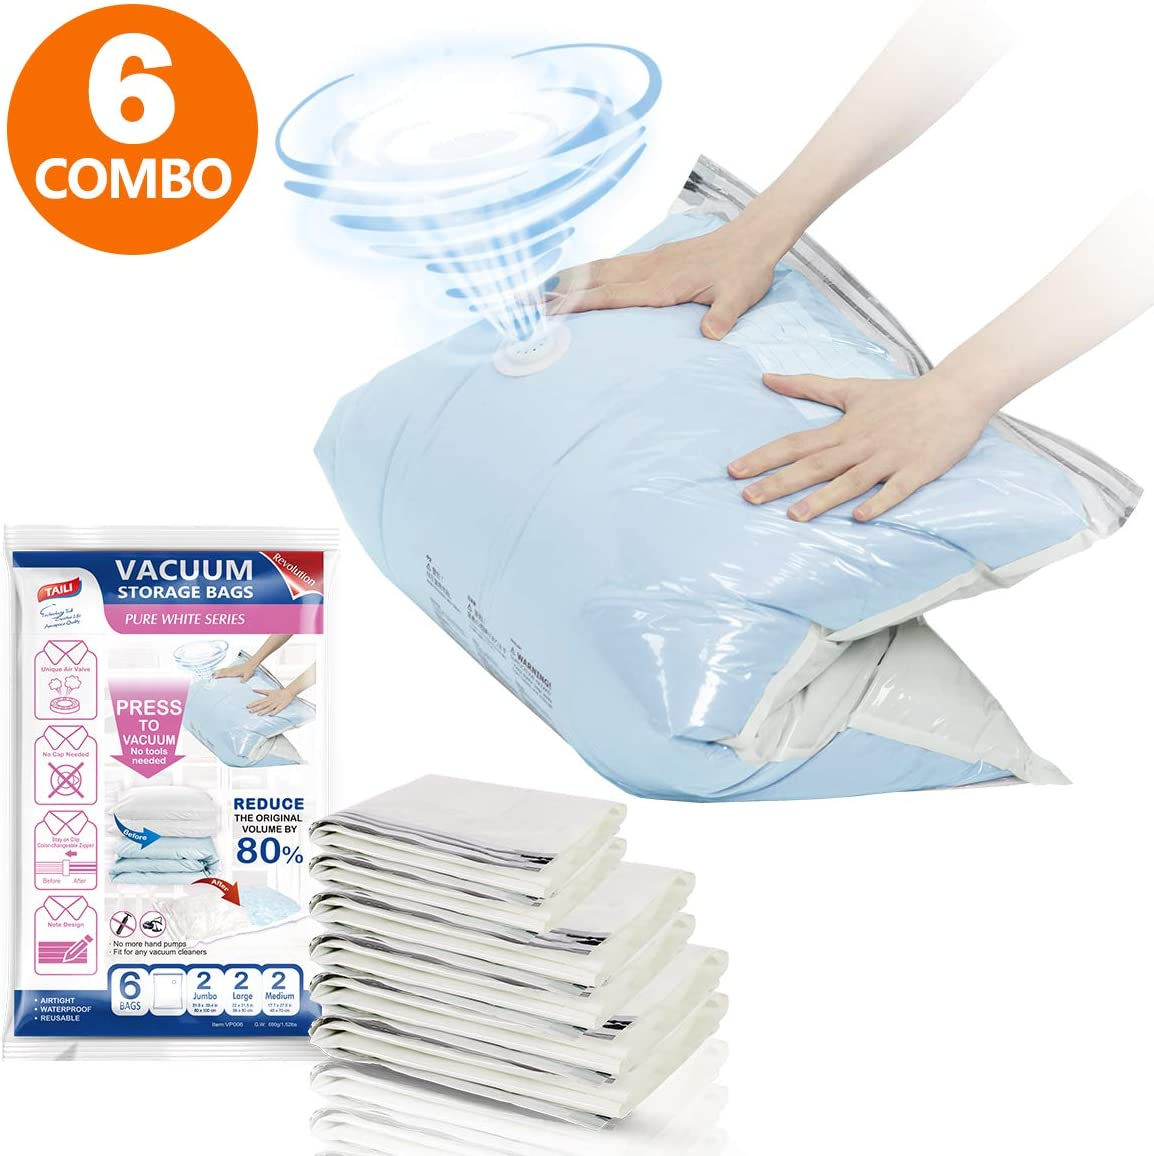 Vacuum Storage Bags (2X Jumbo, 2X Large, 2X Medium) No Pumps Needed, Space Saver Bags Set of 6 Packs for Travel, Organizer for Clothes, Comforters, Bedding, Blanket, Air-Tight and Water-Tight